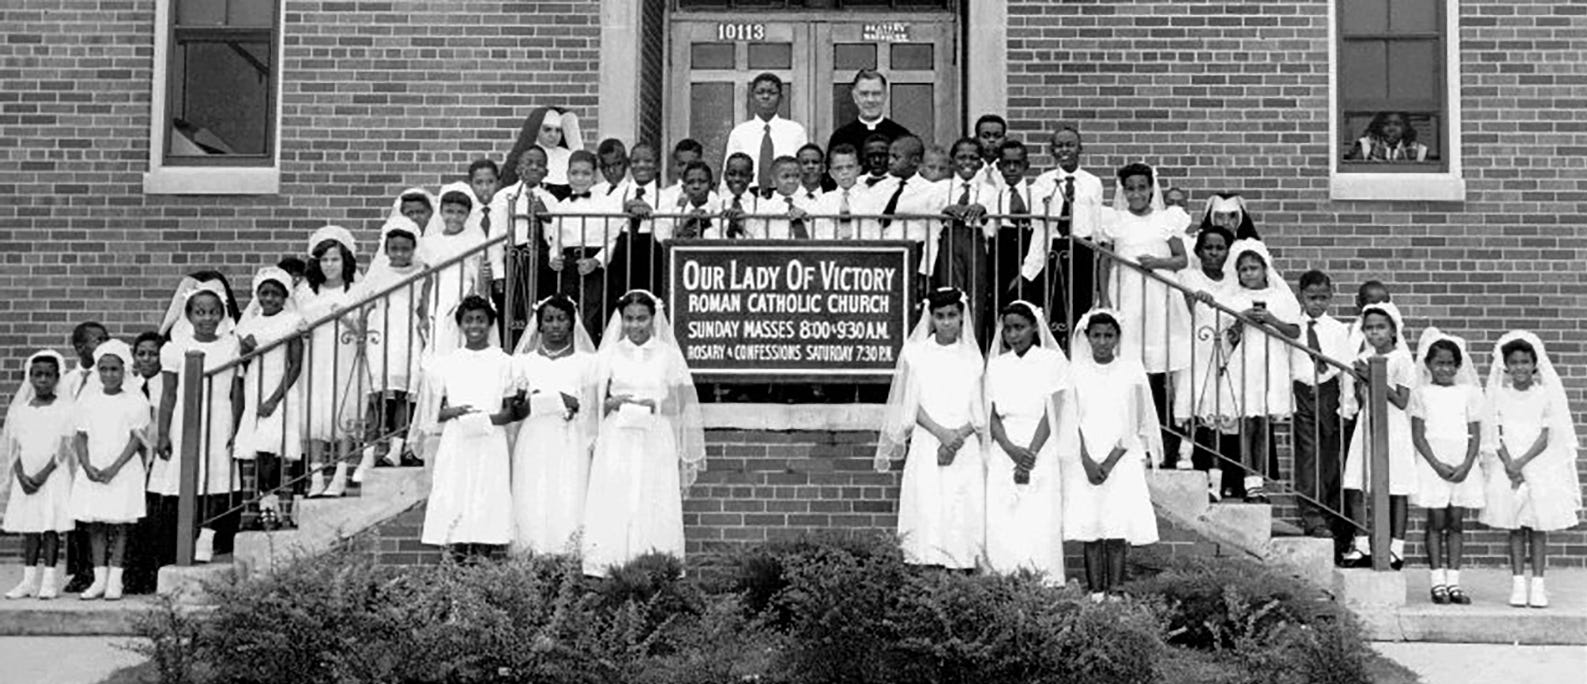 Here is a vintage photo of Our Lady of Victory Catholic School students, dressed to make their First Communion. The school was established in the 1940s near 8 Mile and Wyoming in Detroit to teach Black students who lived in Detroit and Royal Oak Township, across 8 Mile from the parish and school.